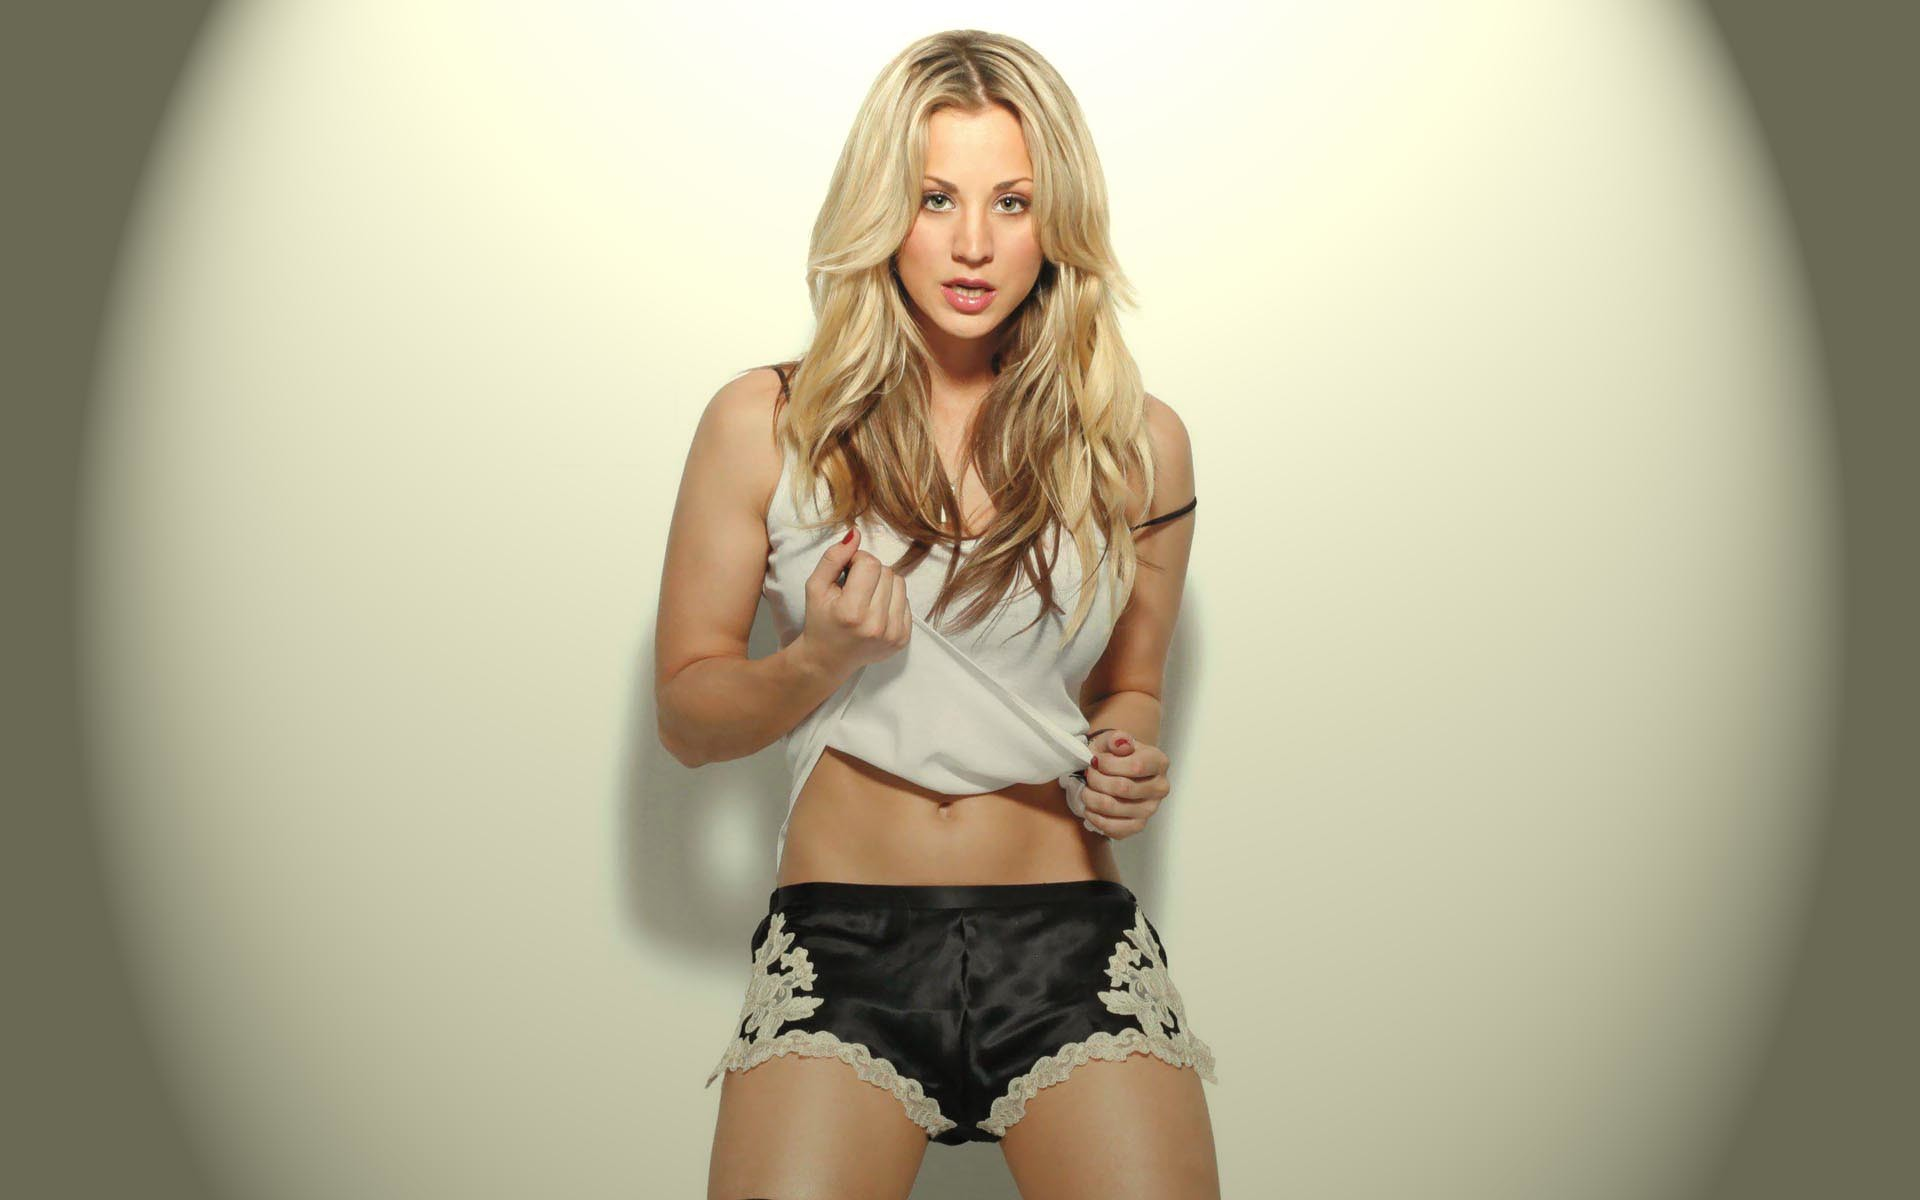 1920x1200 - Kaley Cuoco Wallpapers 29